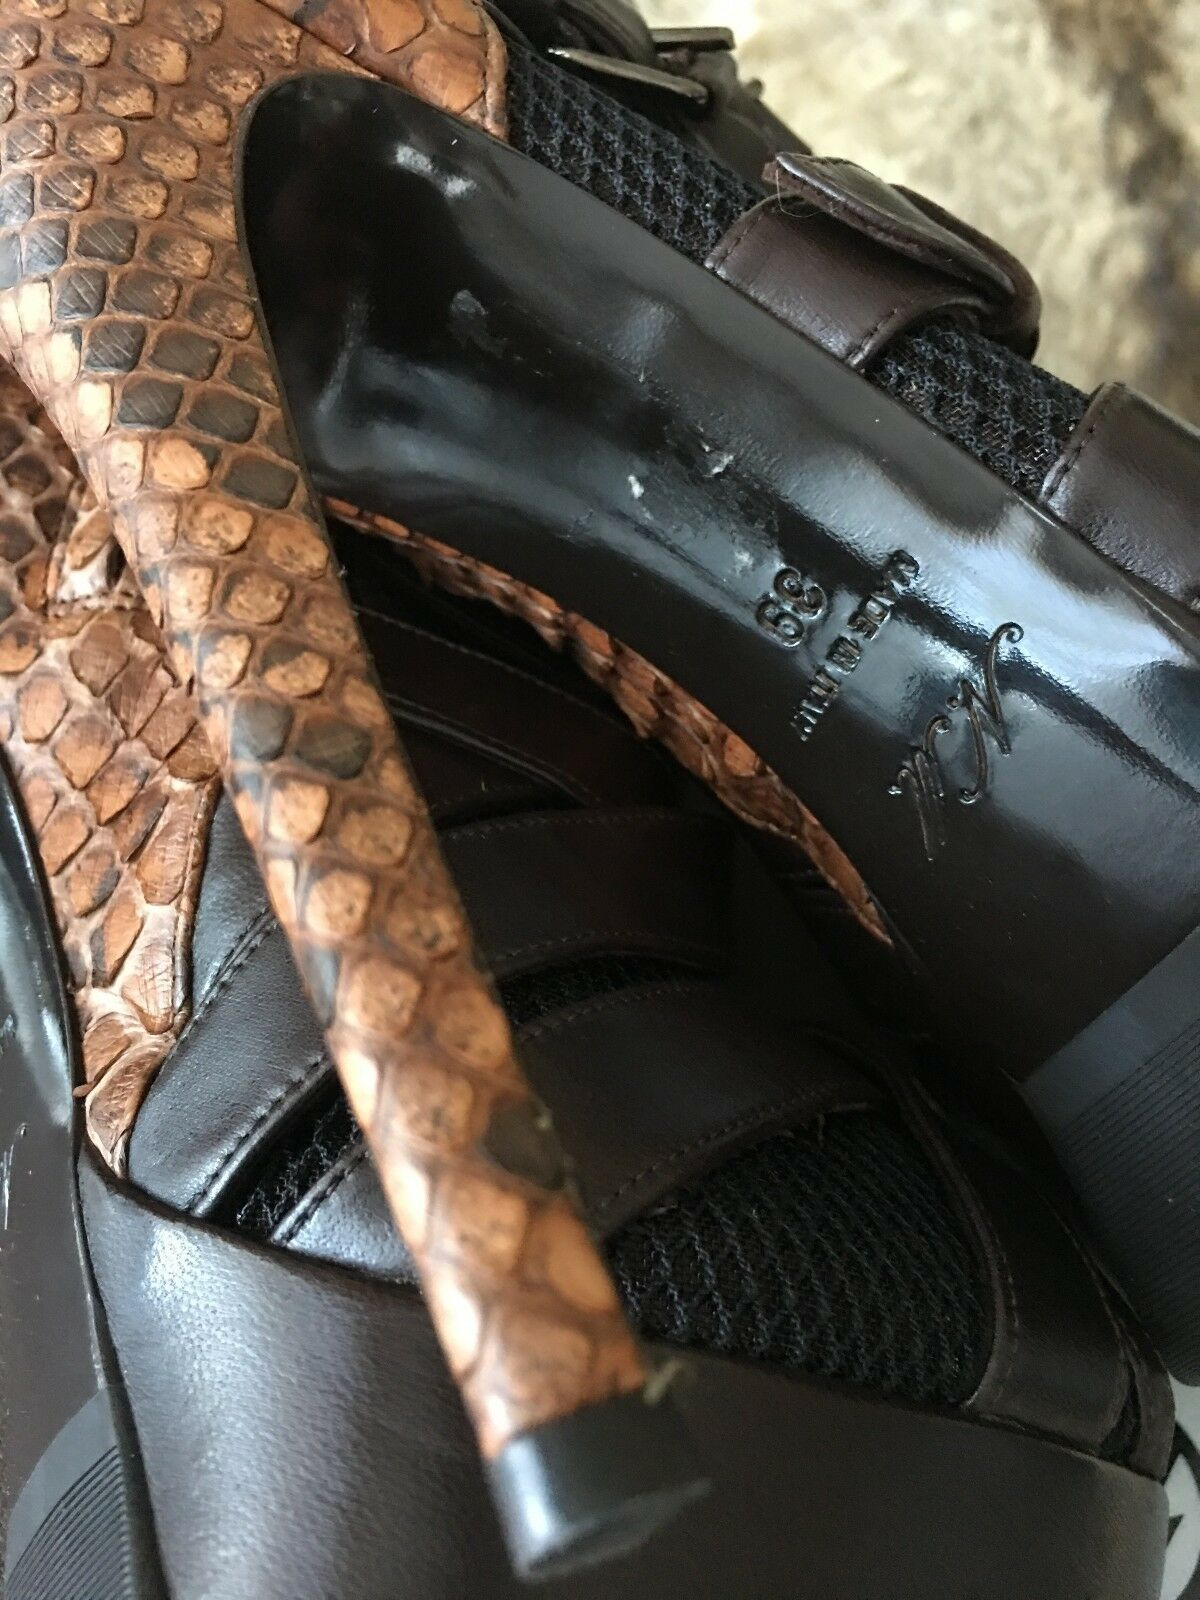 NANDO MUZI Combined Peep Toe Ankle Stiefel with Mesh, 6 Python and Buckles 39 UK 6 Mesh, 82bcfa